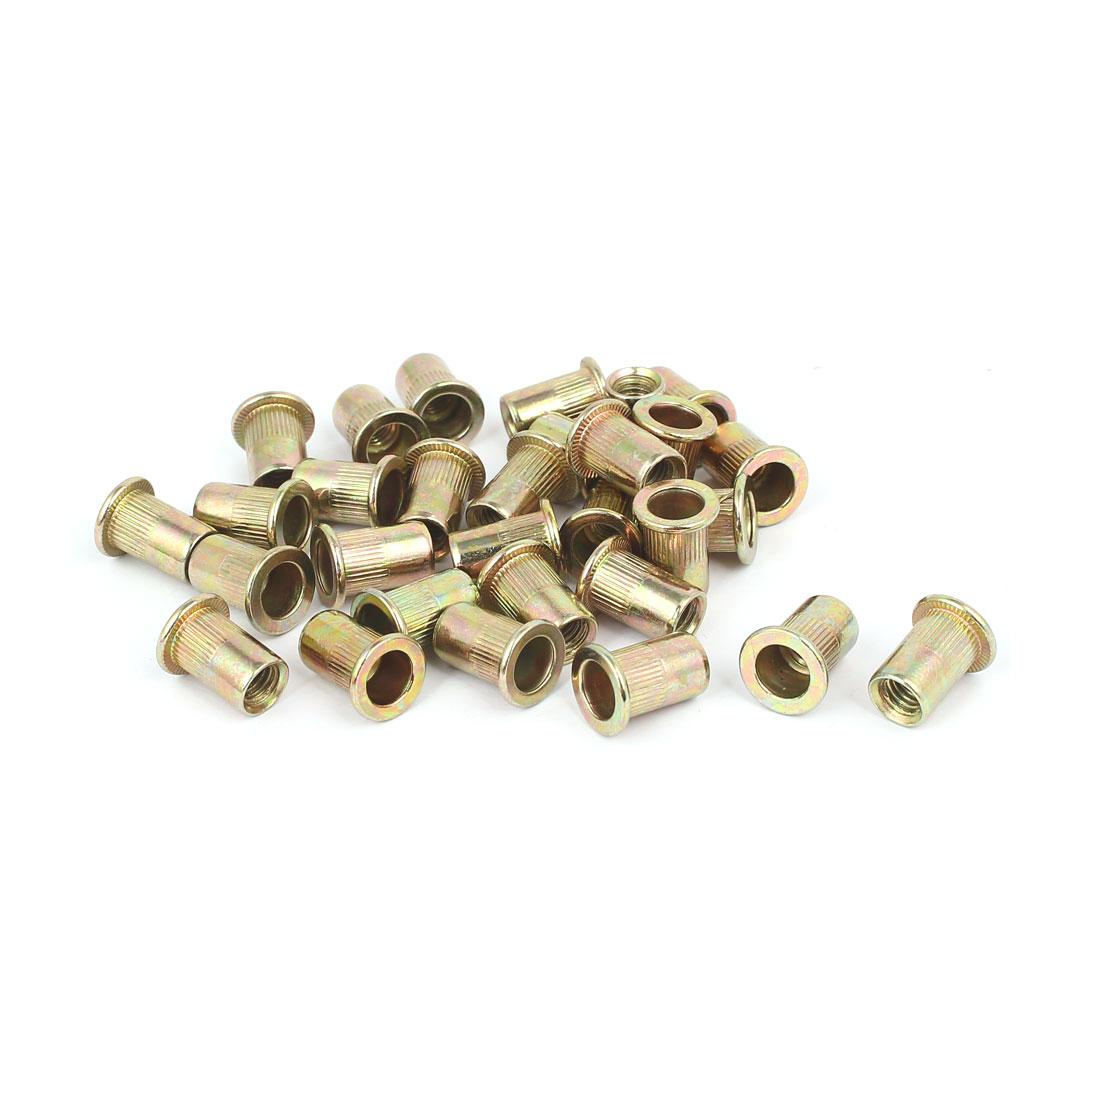 5mmx16mm Straight Knurled Rivet Nut Insert Nutsert Bronze Tone 30pcs